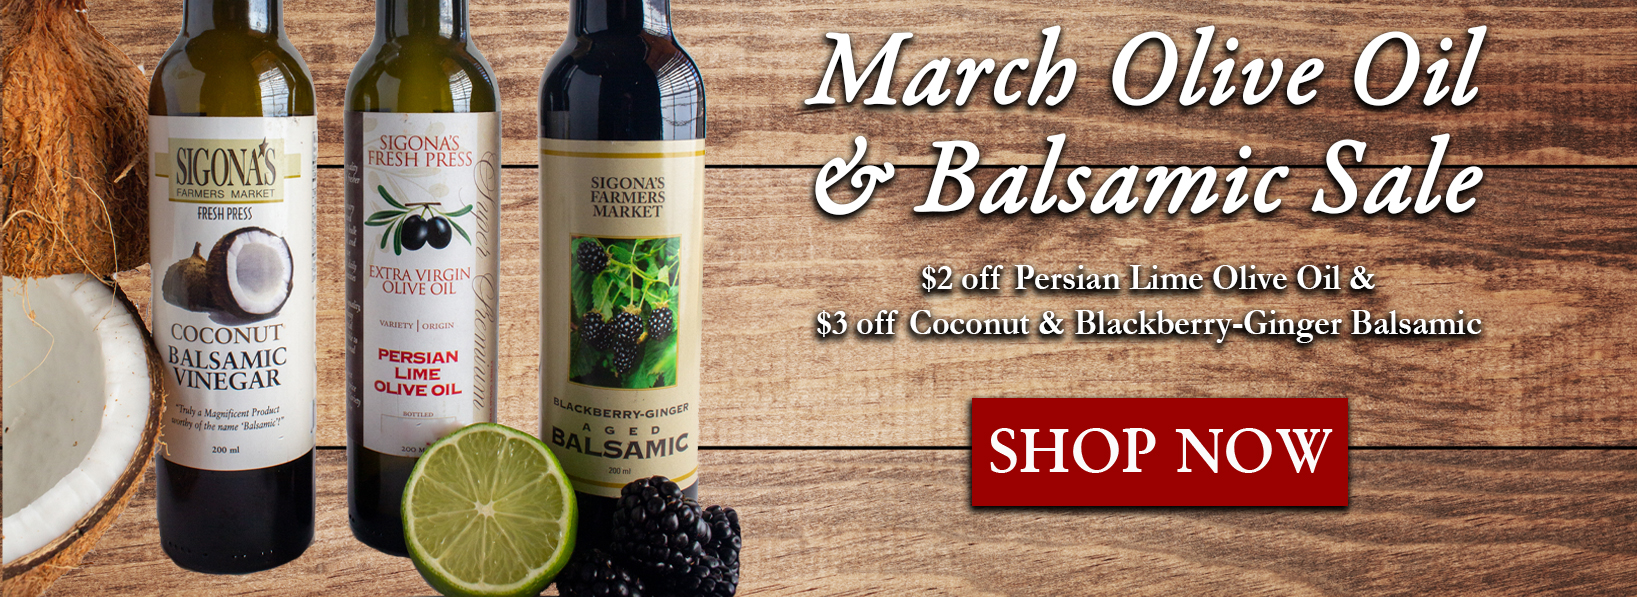 March 2021 Oil Balsamic Sale